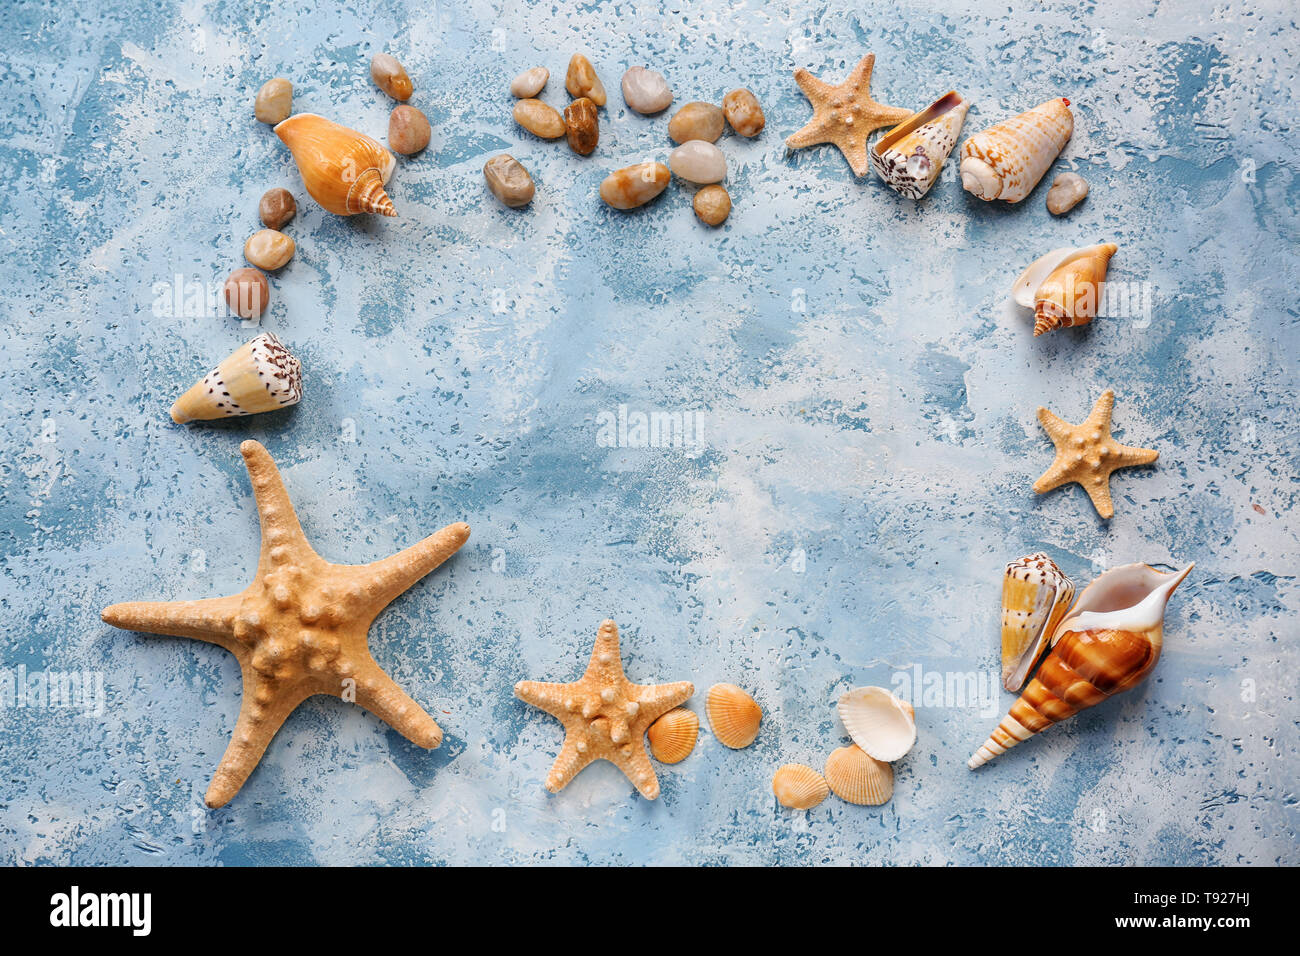 Composition with different sea shells and starfishes on color background - Stock Image